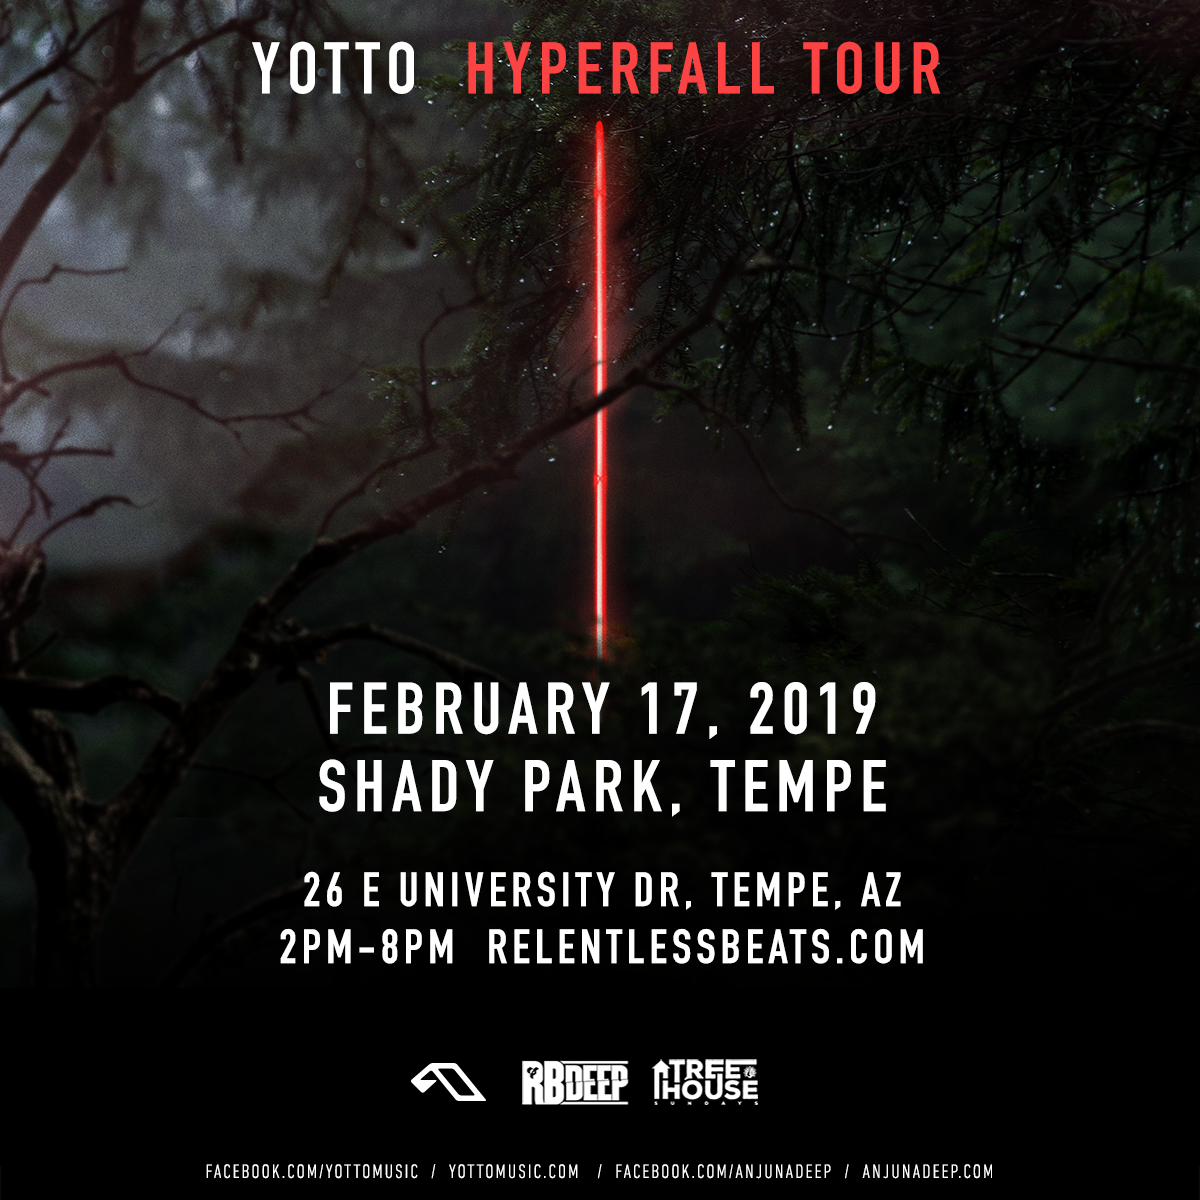 Flyer for Yotto